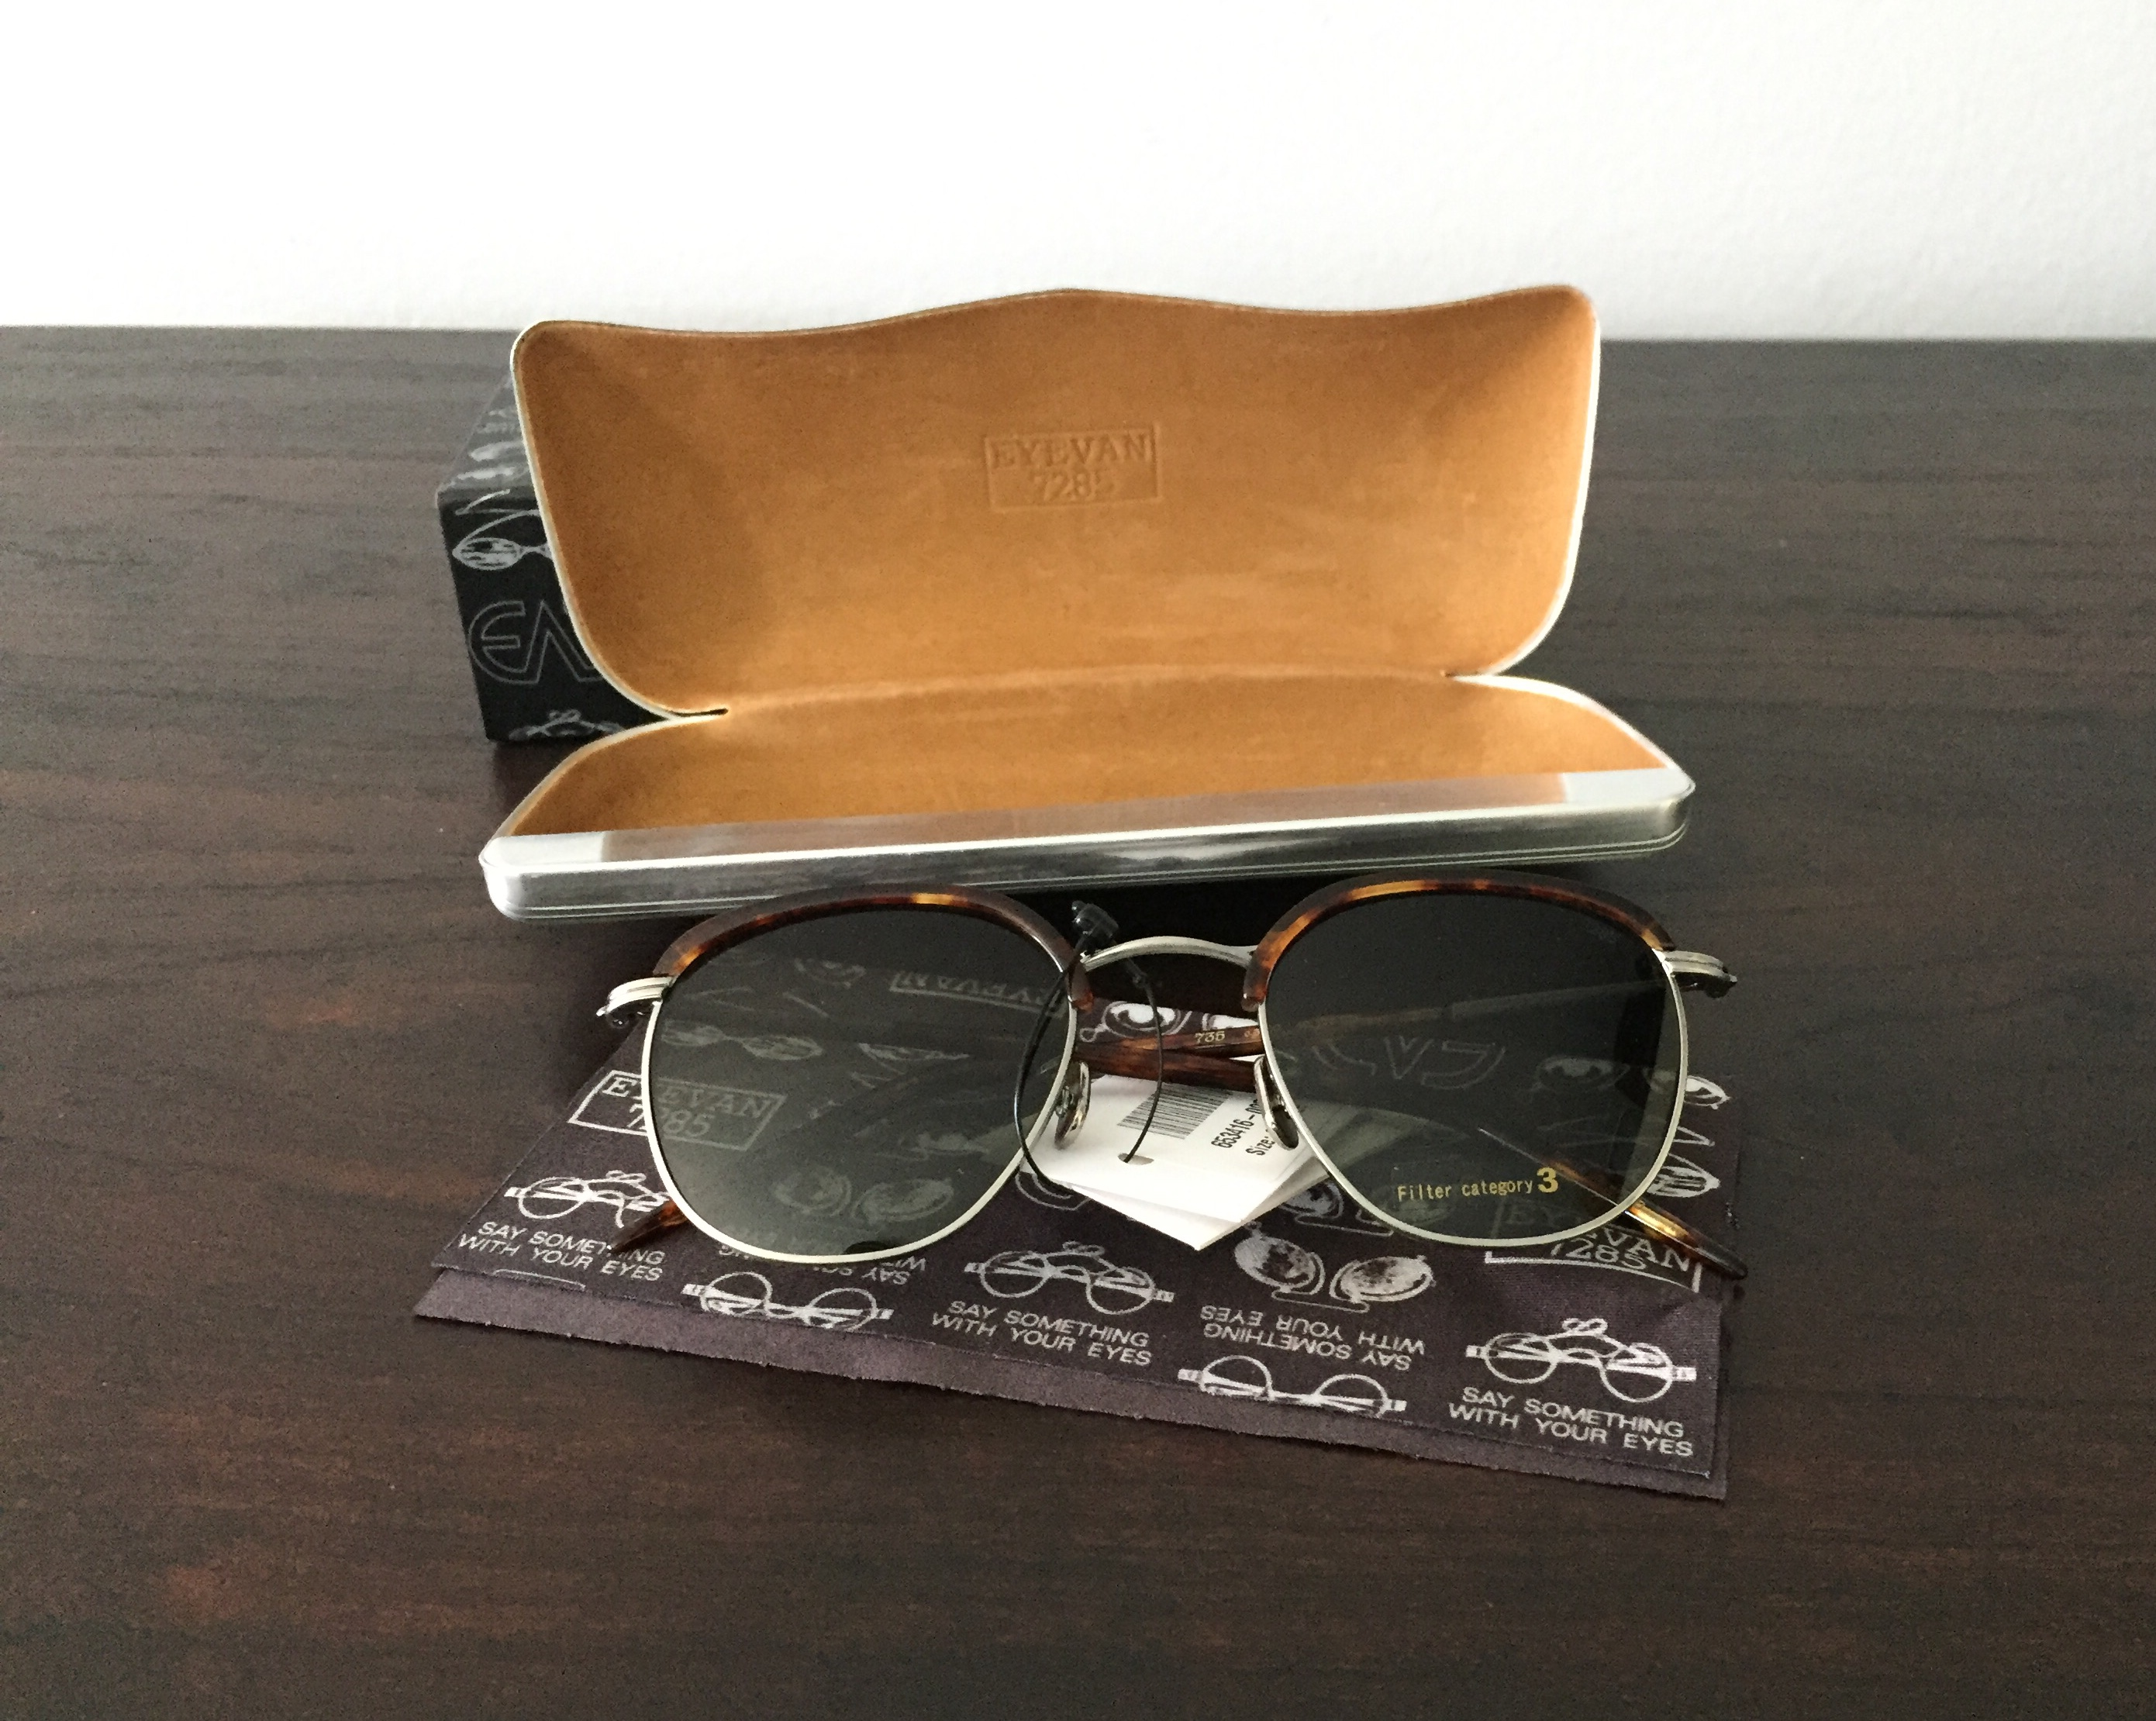 e2221d7aa6 Price Drop  BNWT Eyevan 7285 Model 735 Sunglasses